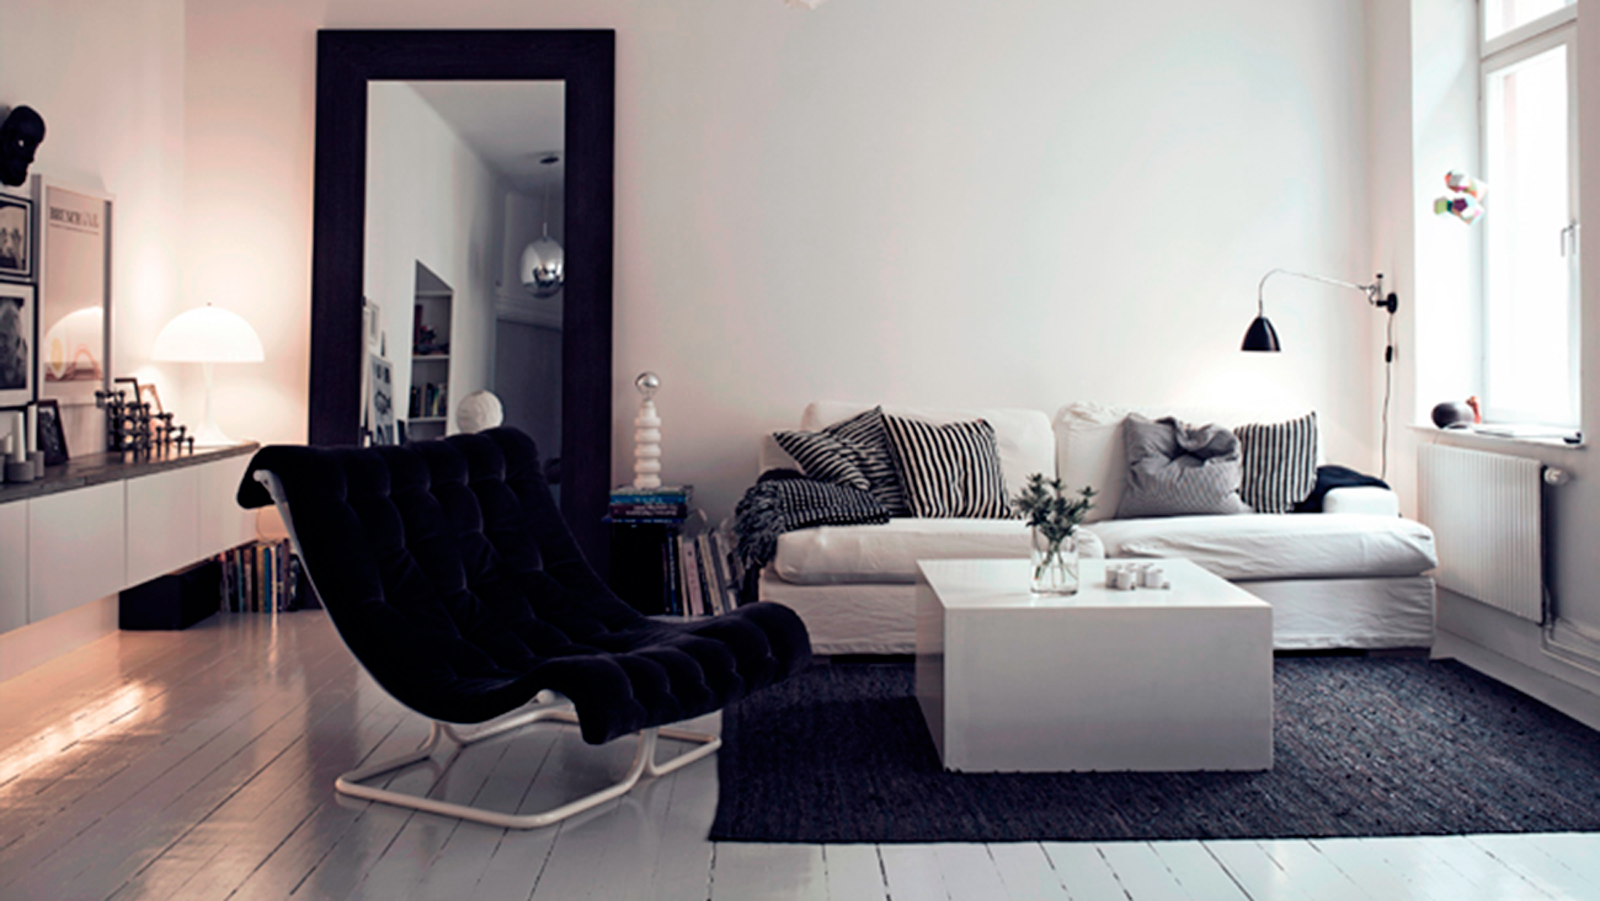 StyleAndMinimalism | Interiors | Small Smart Apartment In Sweden